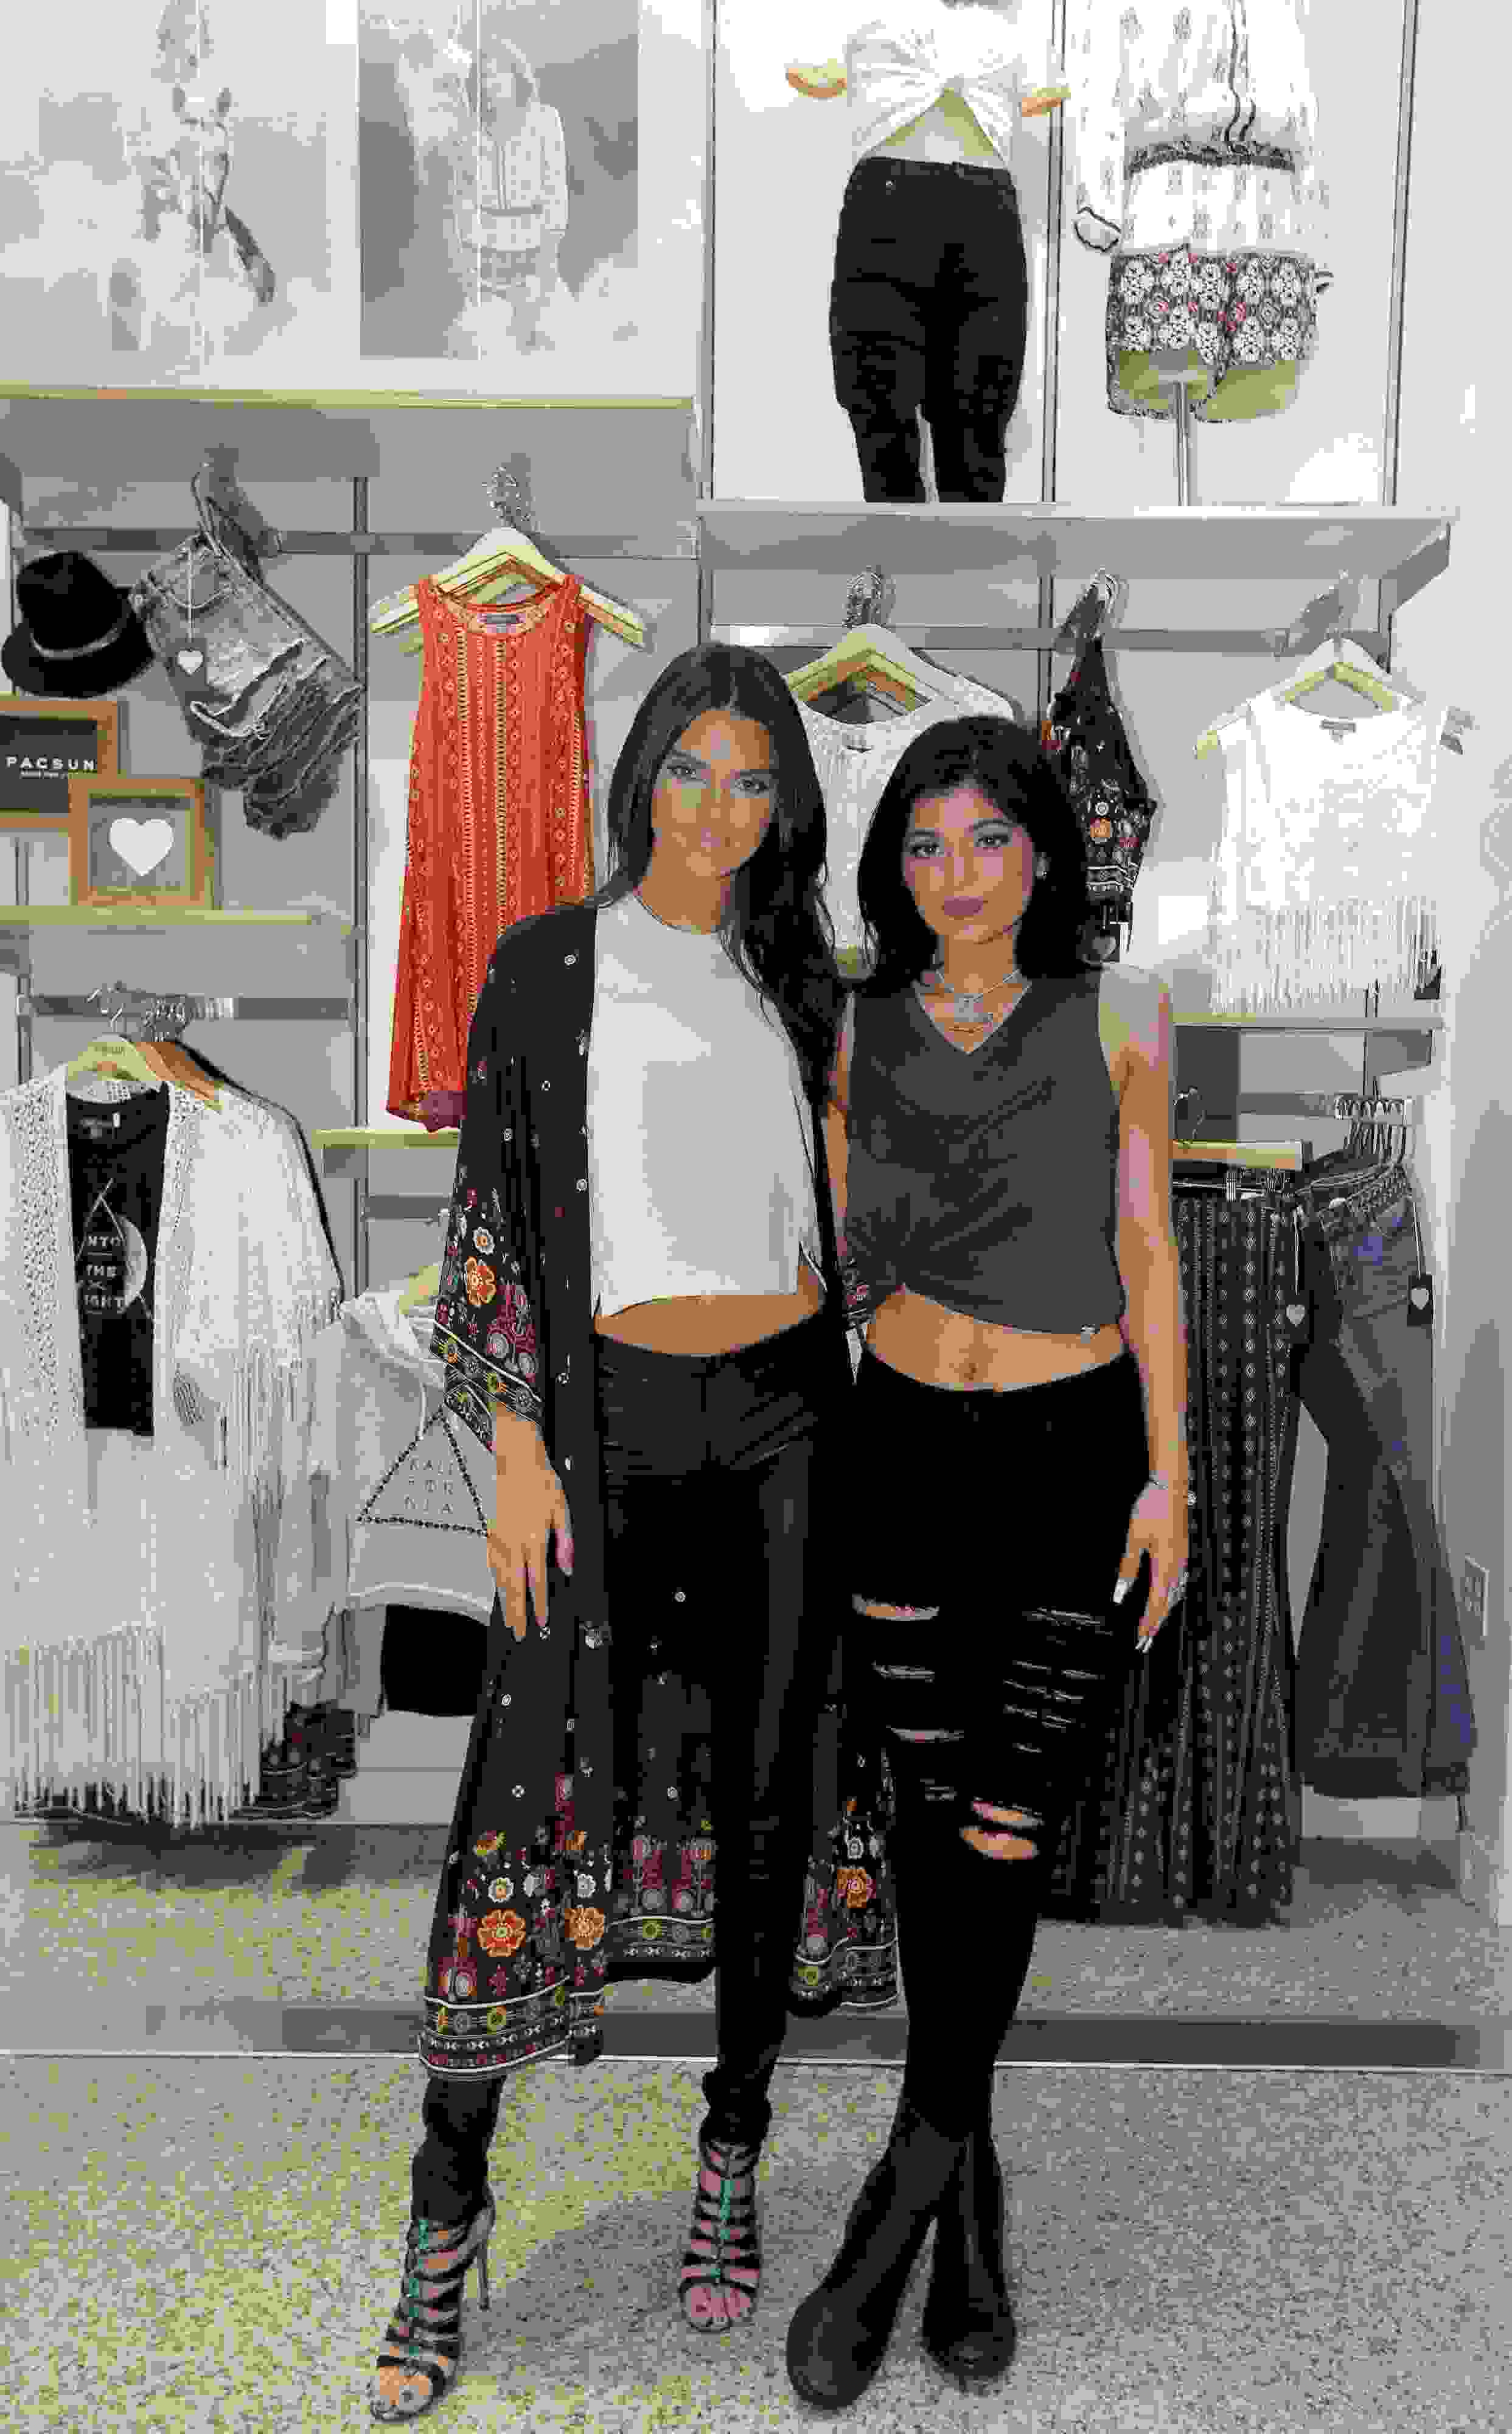 Kylie Y Kendall Jenner Lanzan Colecci 243 N Back To School